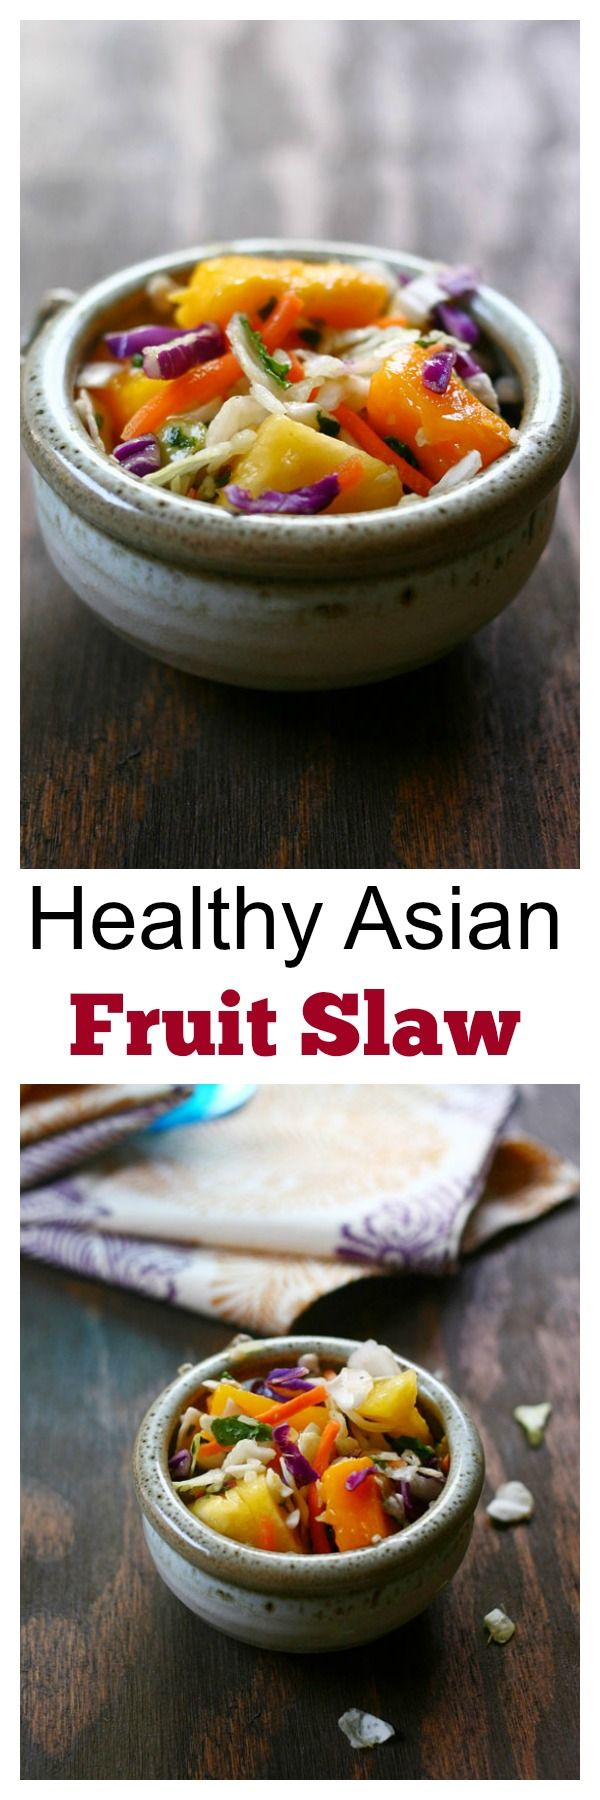 Asian Fruit Slaw - healthy, low-calorie, and delicious Asian fruit slaw recipe that make you feel good every day!! | rasamalaysia.com